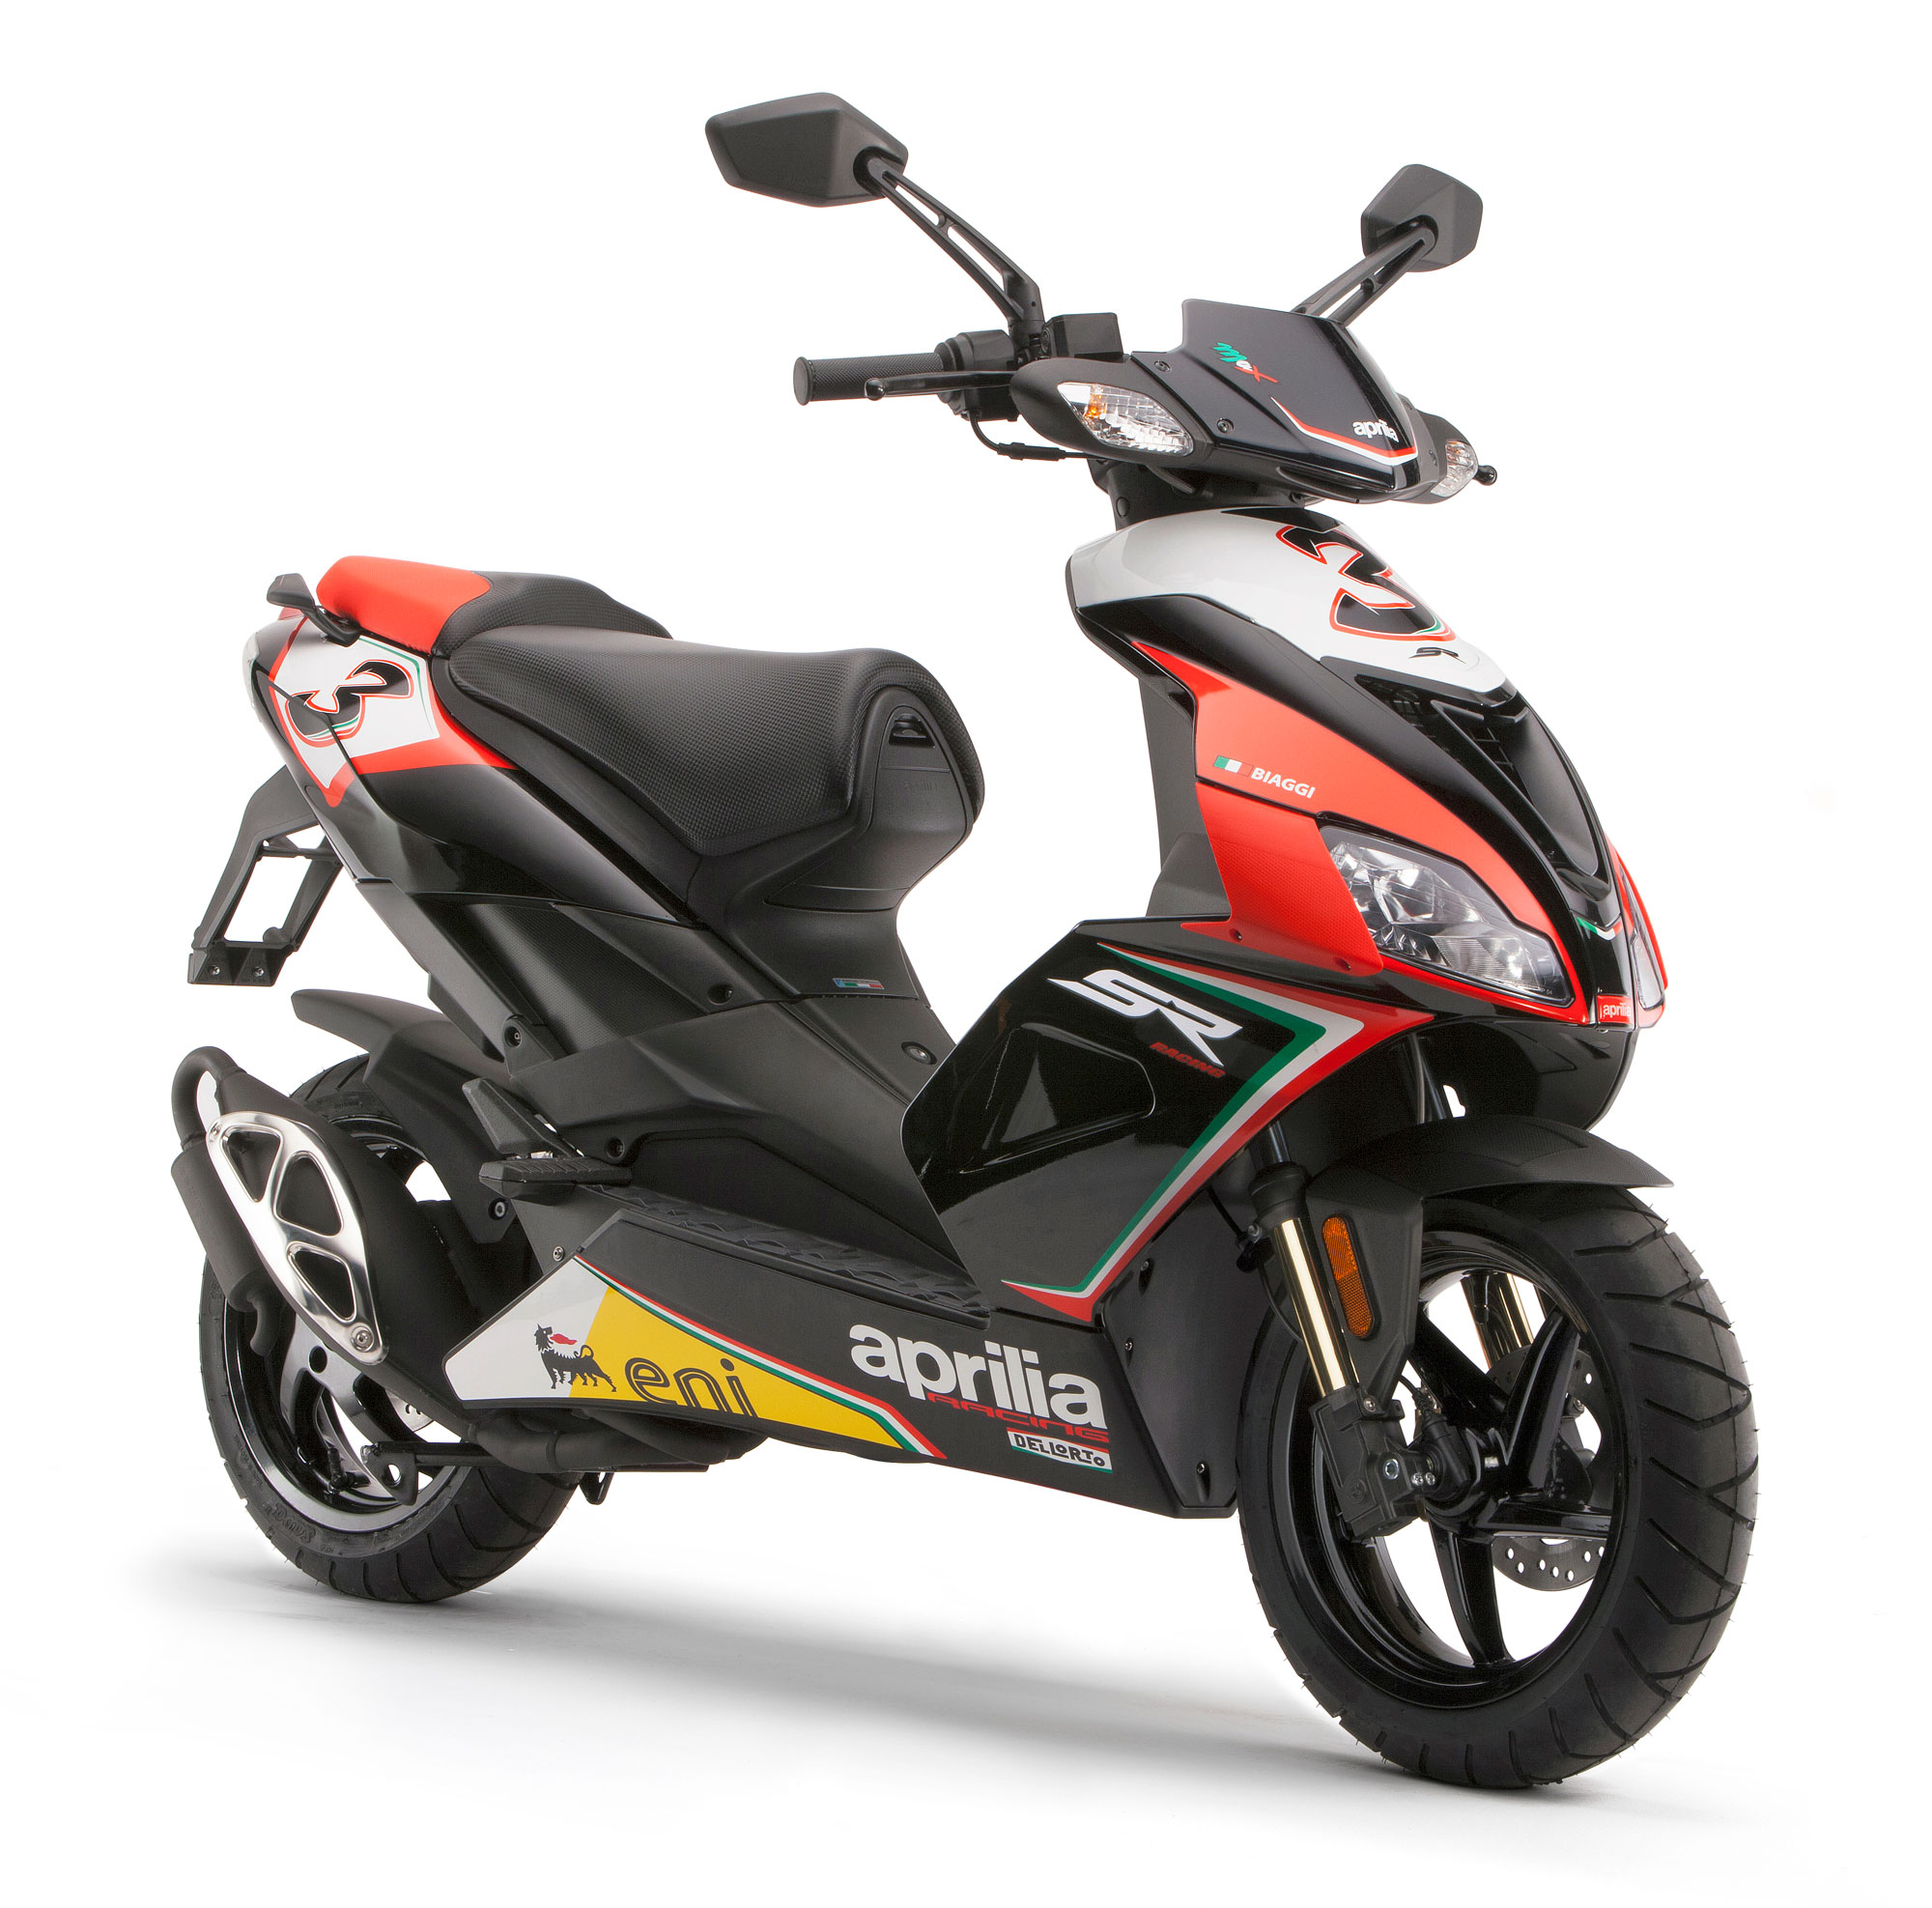 aprilia motorcycles pics specs and list of models. Black Bedroom Furniture Sets. Home Design Ideas